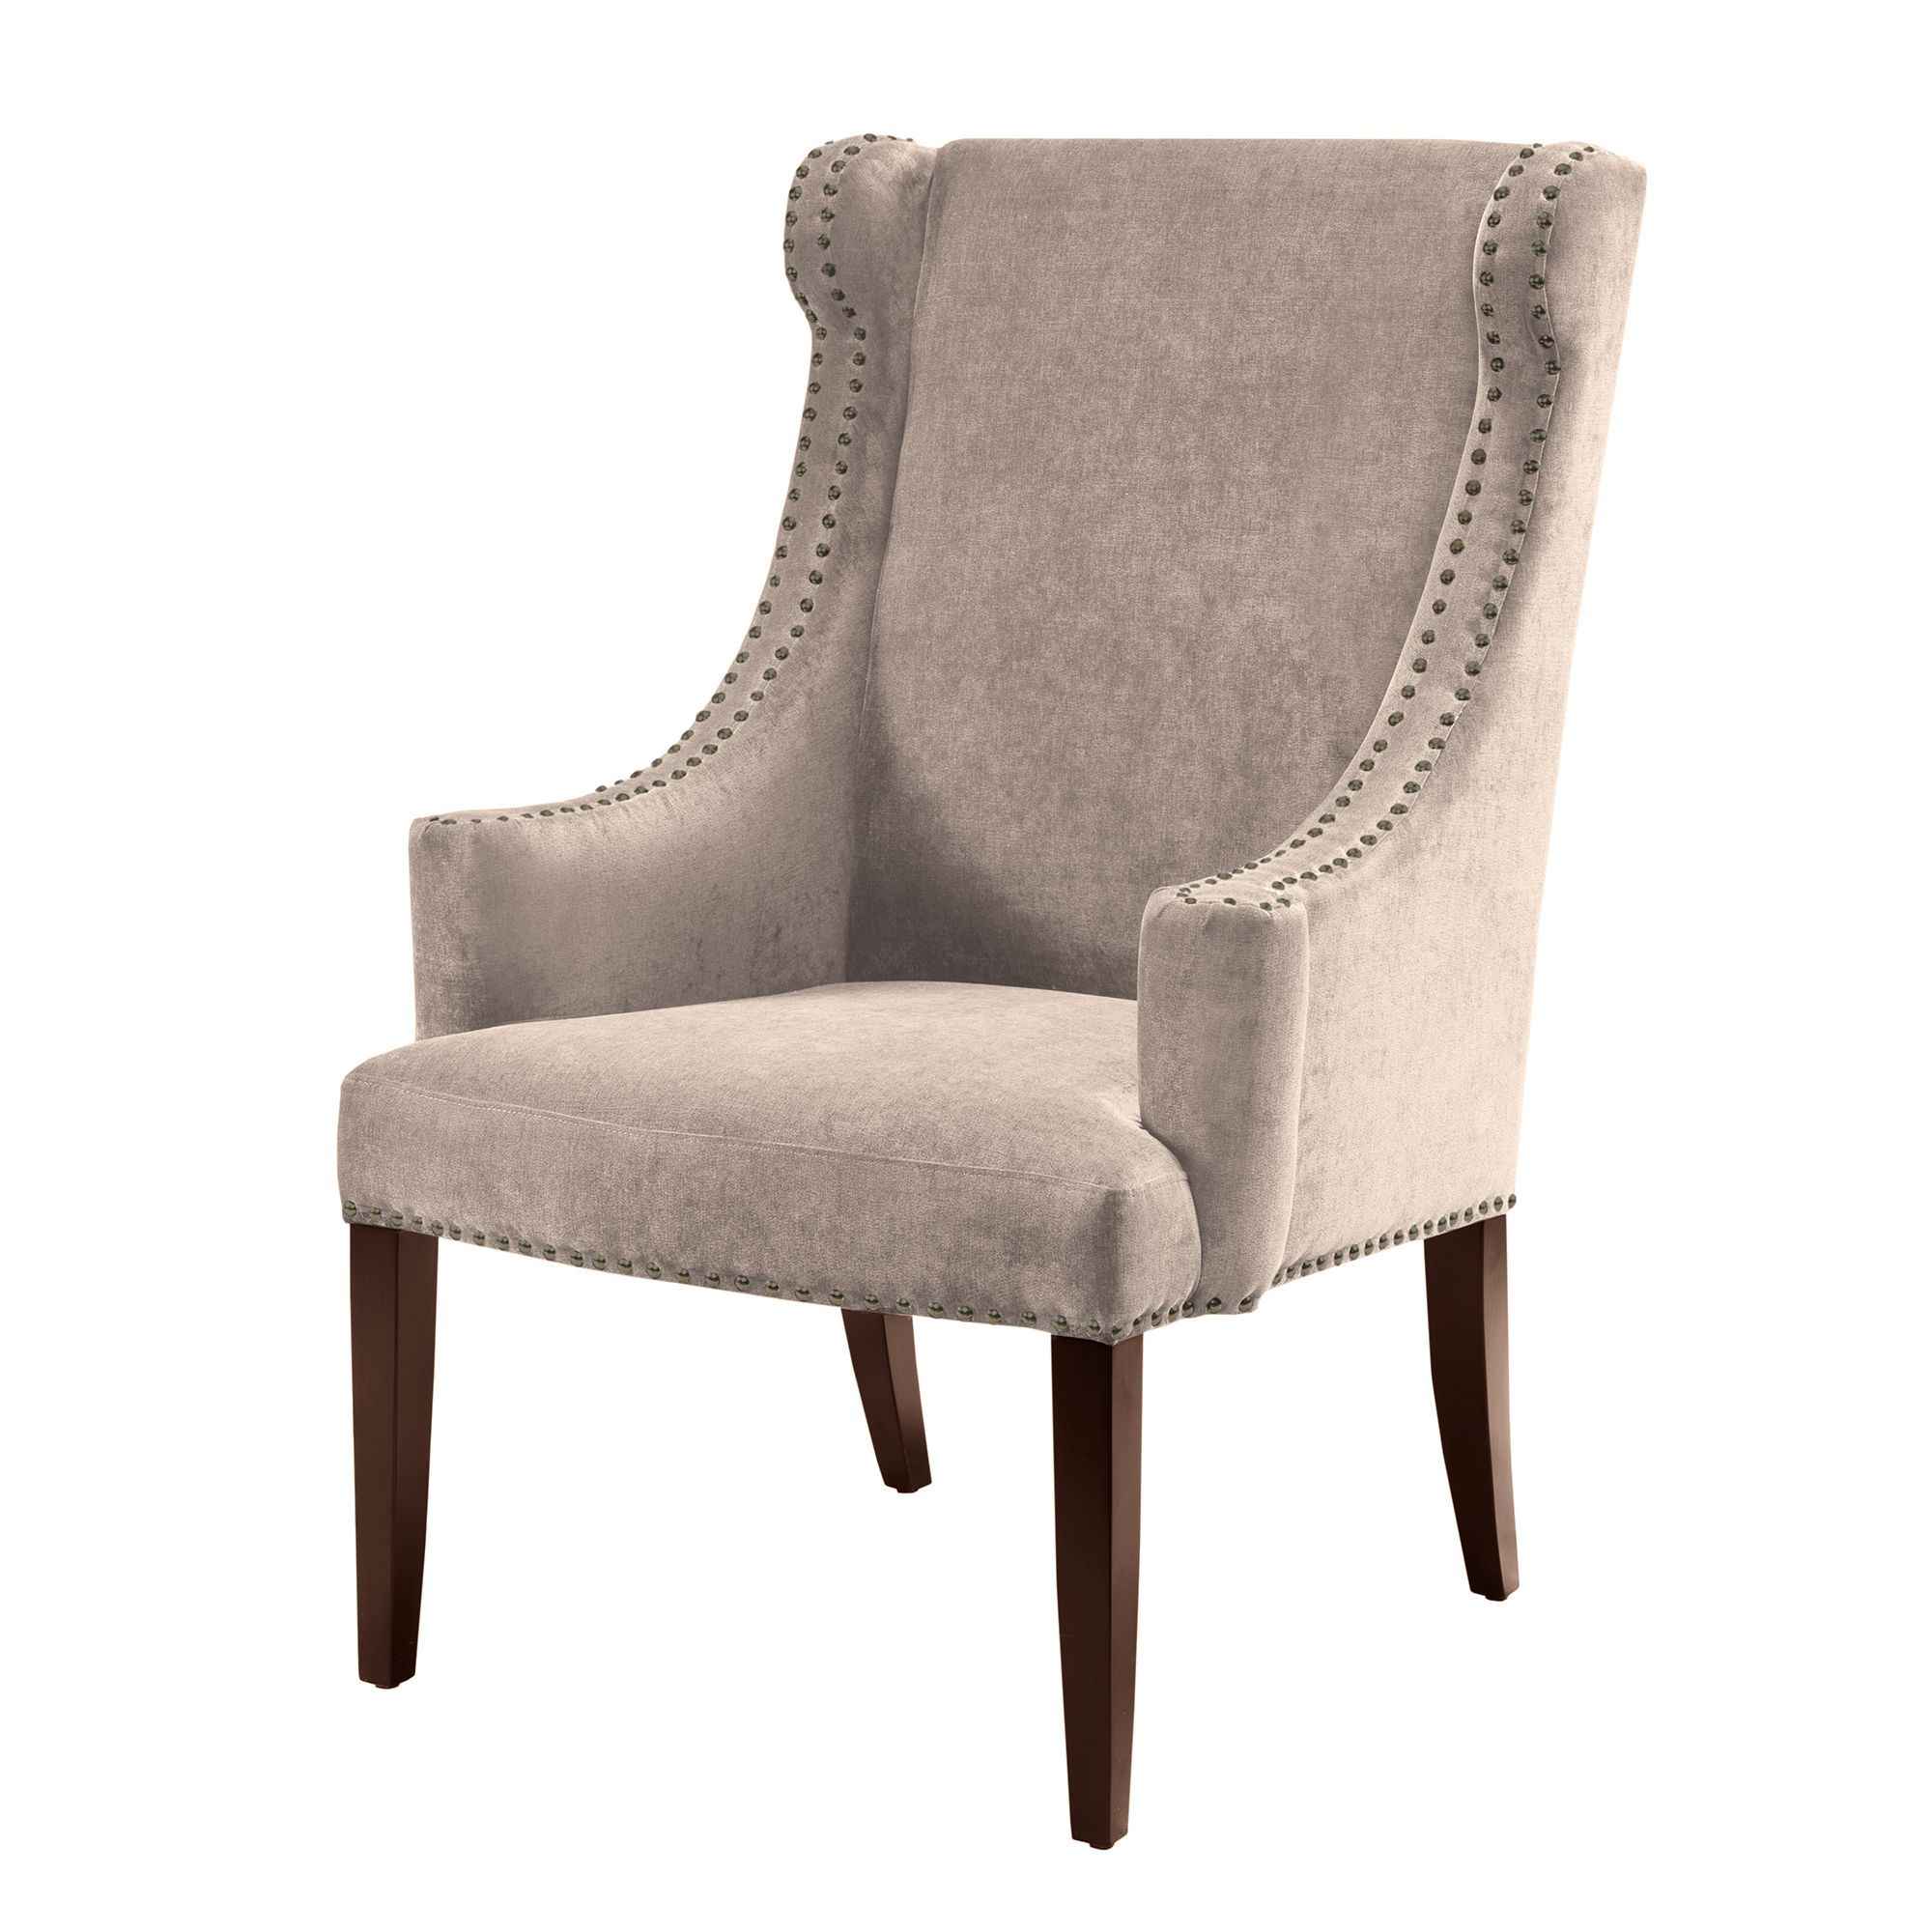 Add This Stylish Piece To Your Decorating Mix As An Updated Accent Pleasing High Back Living Room Chair Decorating Design